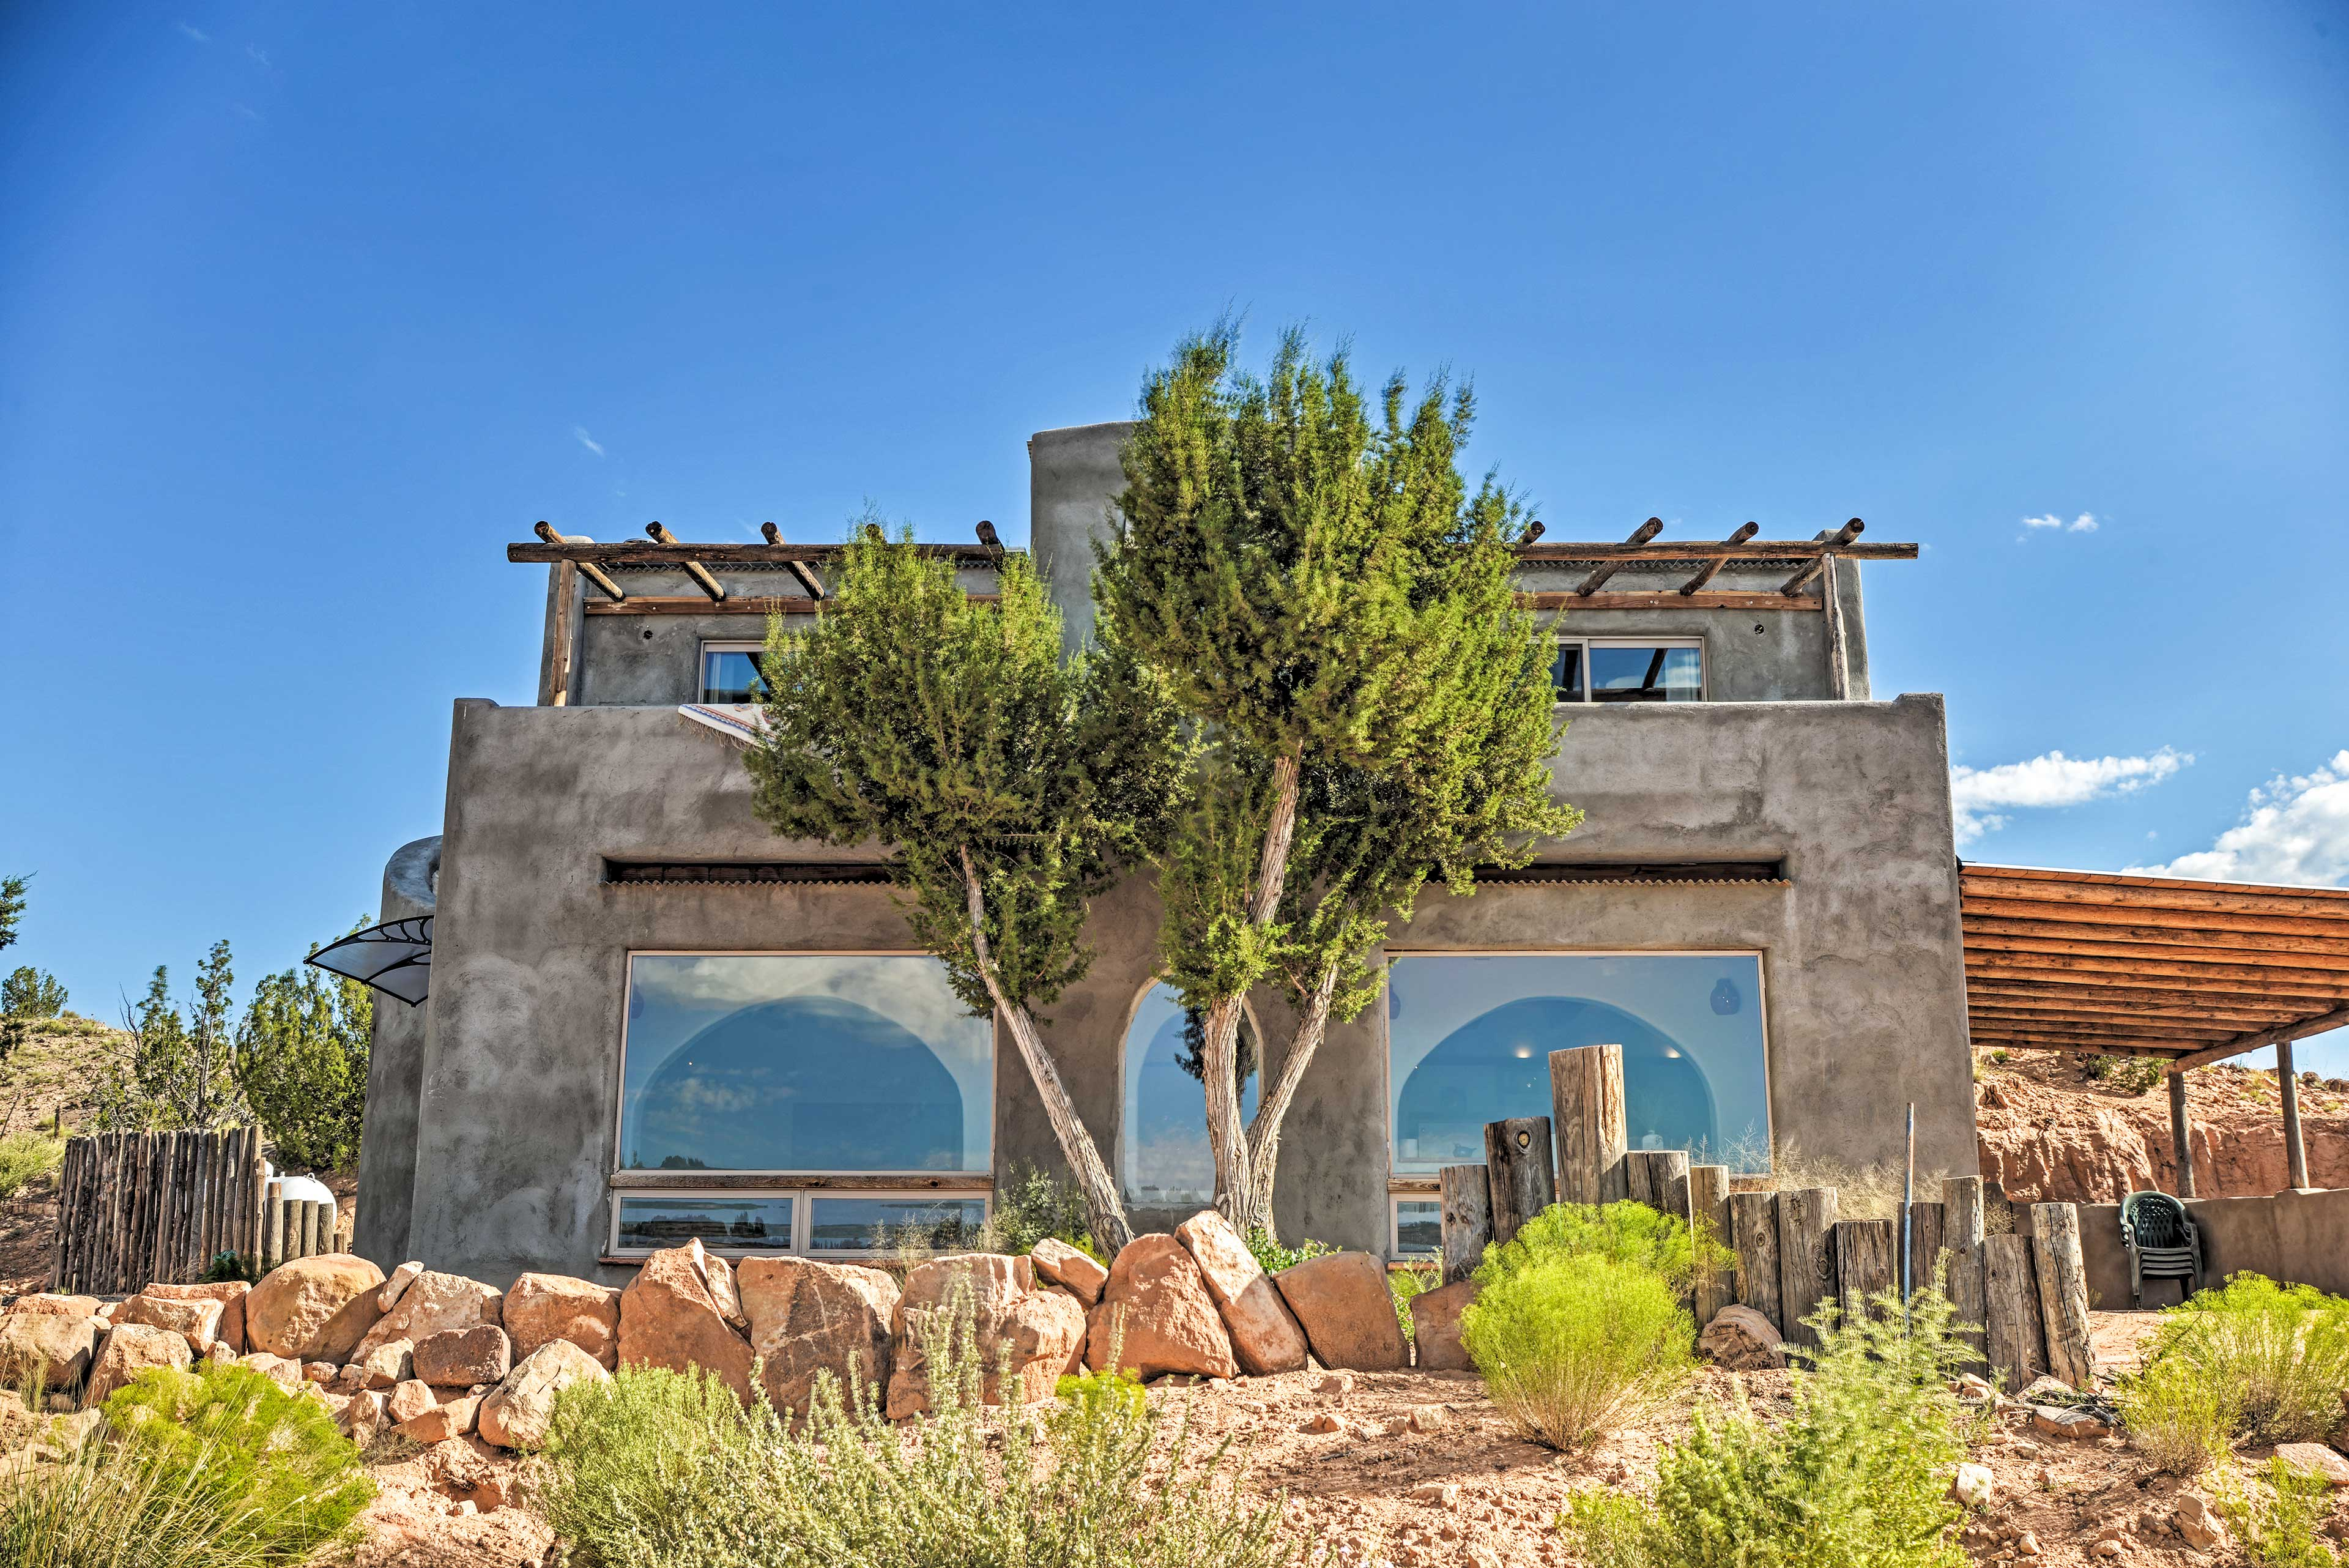 Escape to New Mexico & enjoy an adventurous holiday at this San Ysidro home.